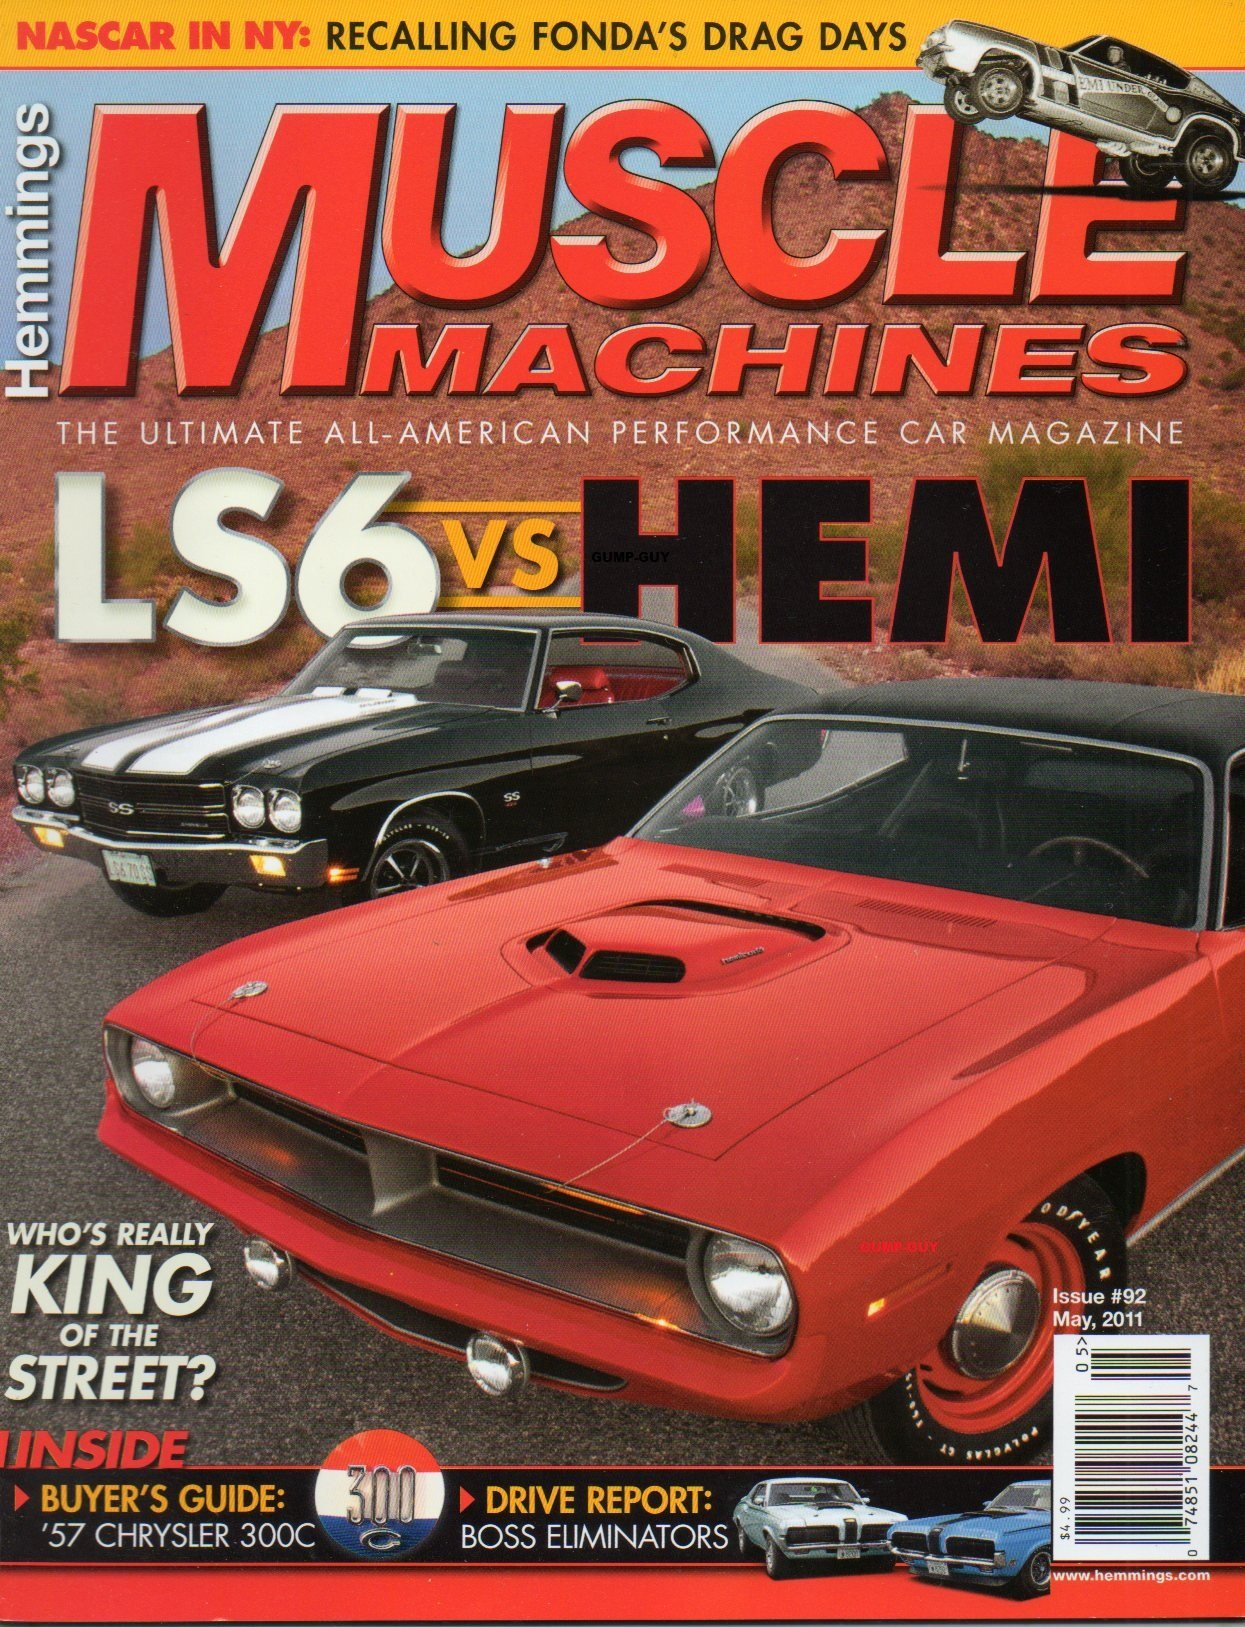 Hemmings Muscle Machines 92 2011 The Ultimate All American Performance Car Magazine NASCAR IN NY RECALLING FONDAS DRAG DAYS Buyers Guide 1957 Chrysler